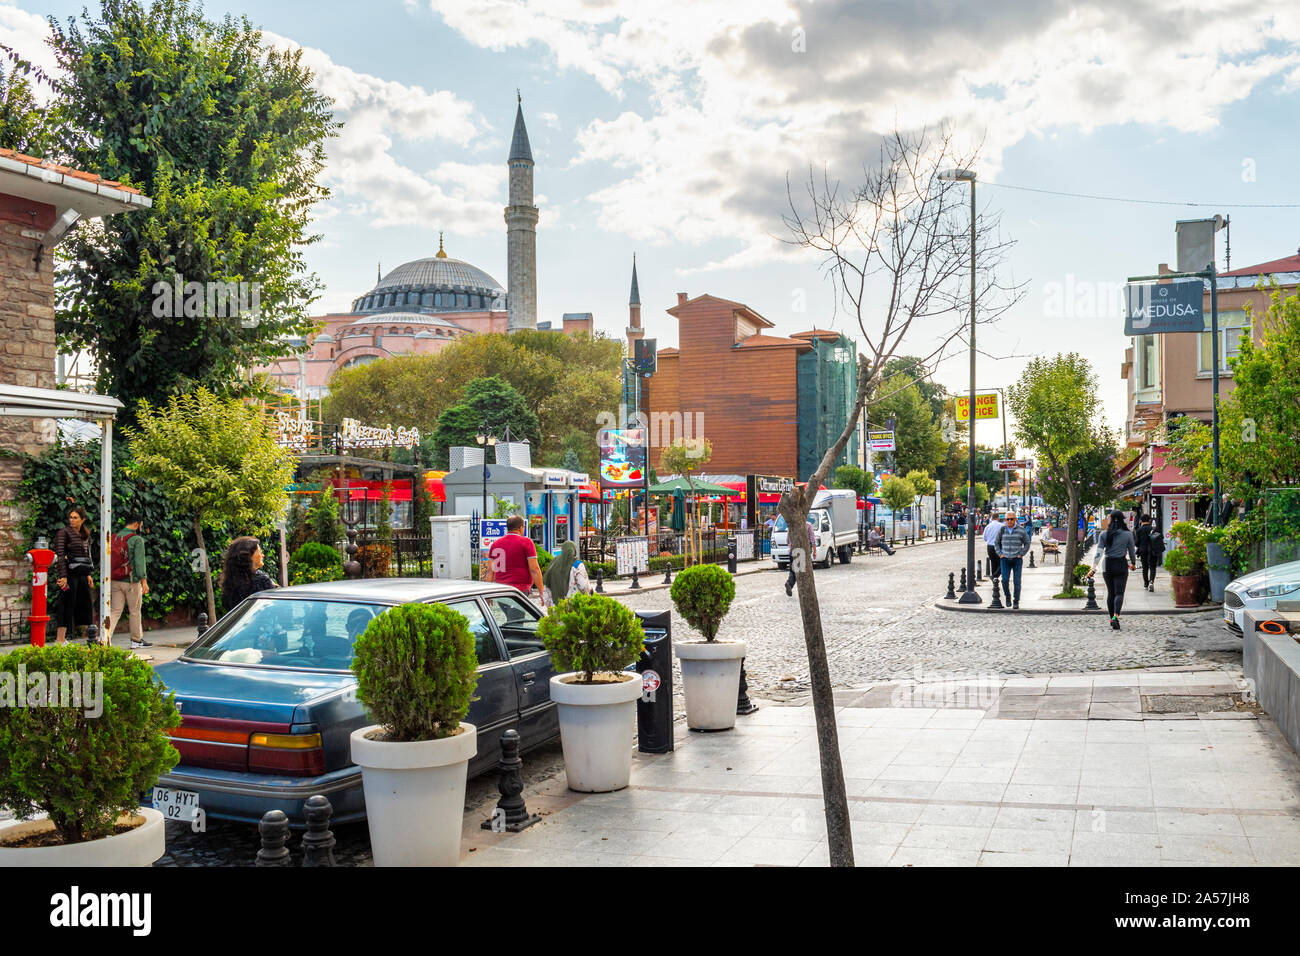 Hagia Sophia museum and mosque is visible in the distance near the Ottoman Life park on a street in the Sultanahmet district of Istanbul Turkey. Stock Photo